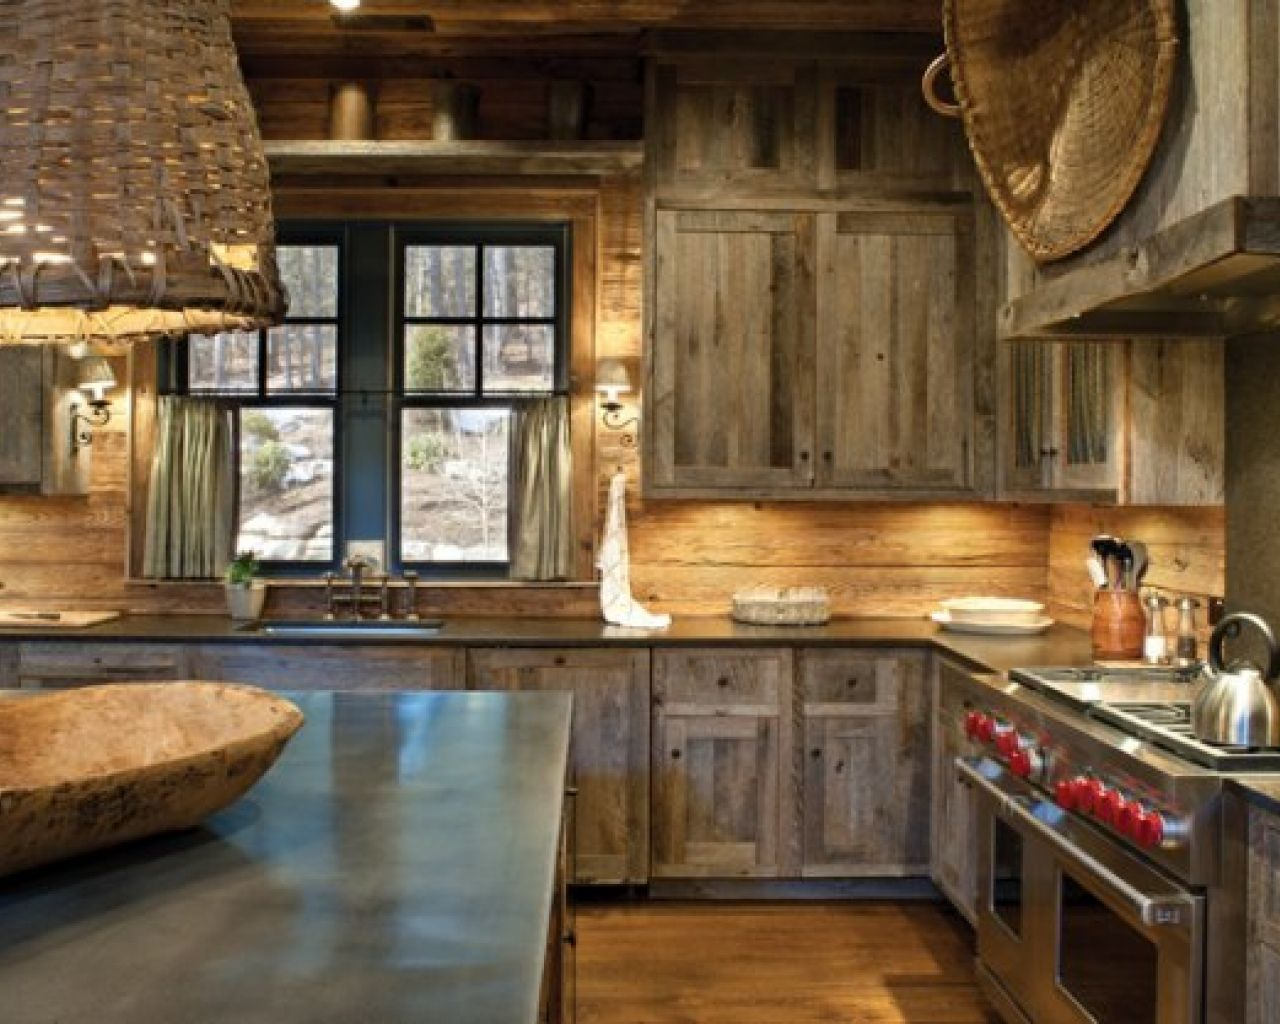 Rustic And Modern Combination Kitchen Rustic Modern Kitchen Rustic Country Kitchen Decor Rustic Country Kitchens